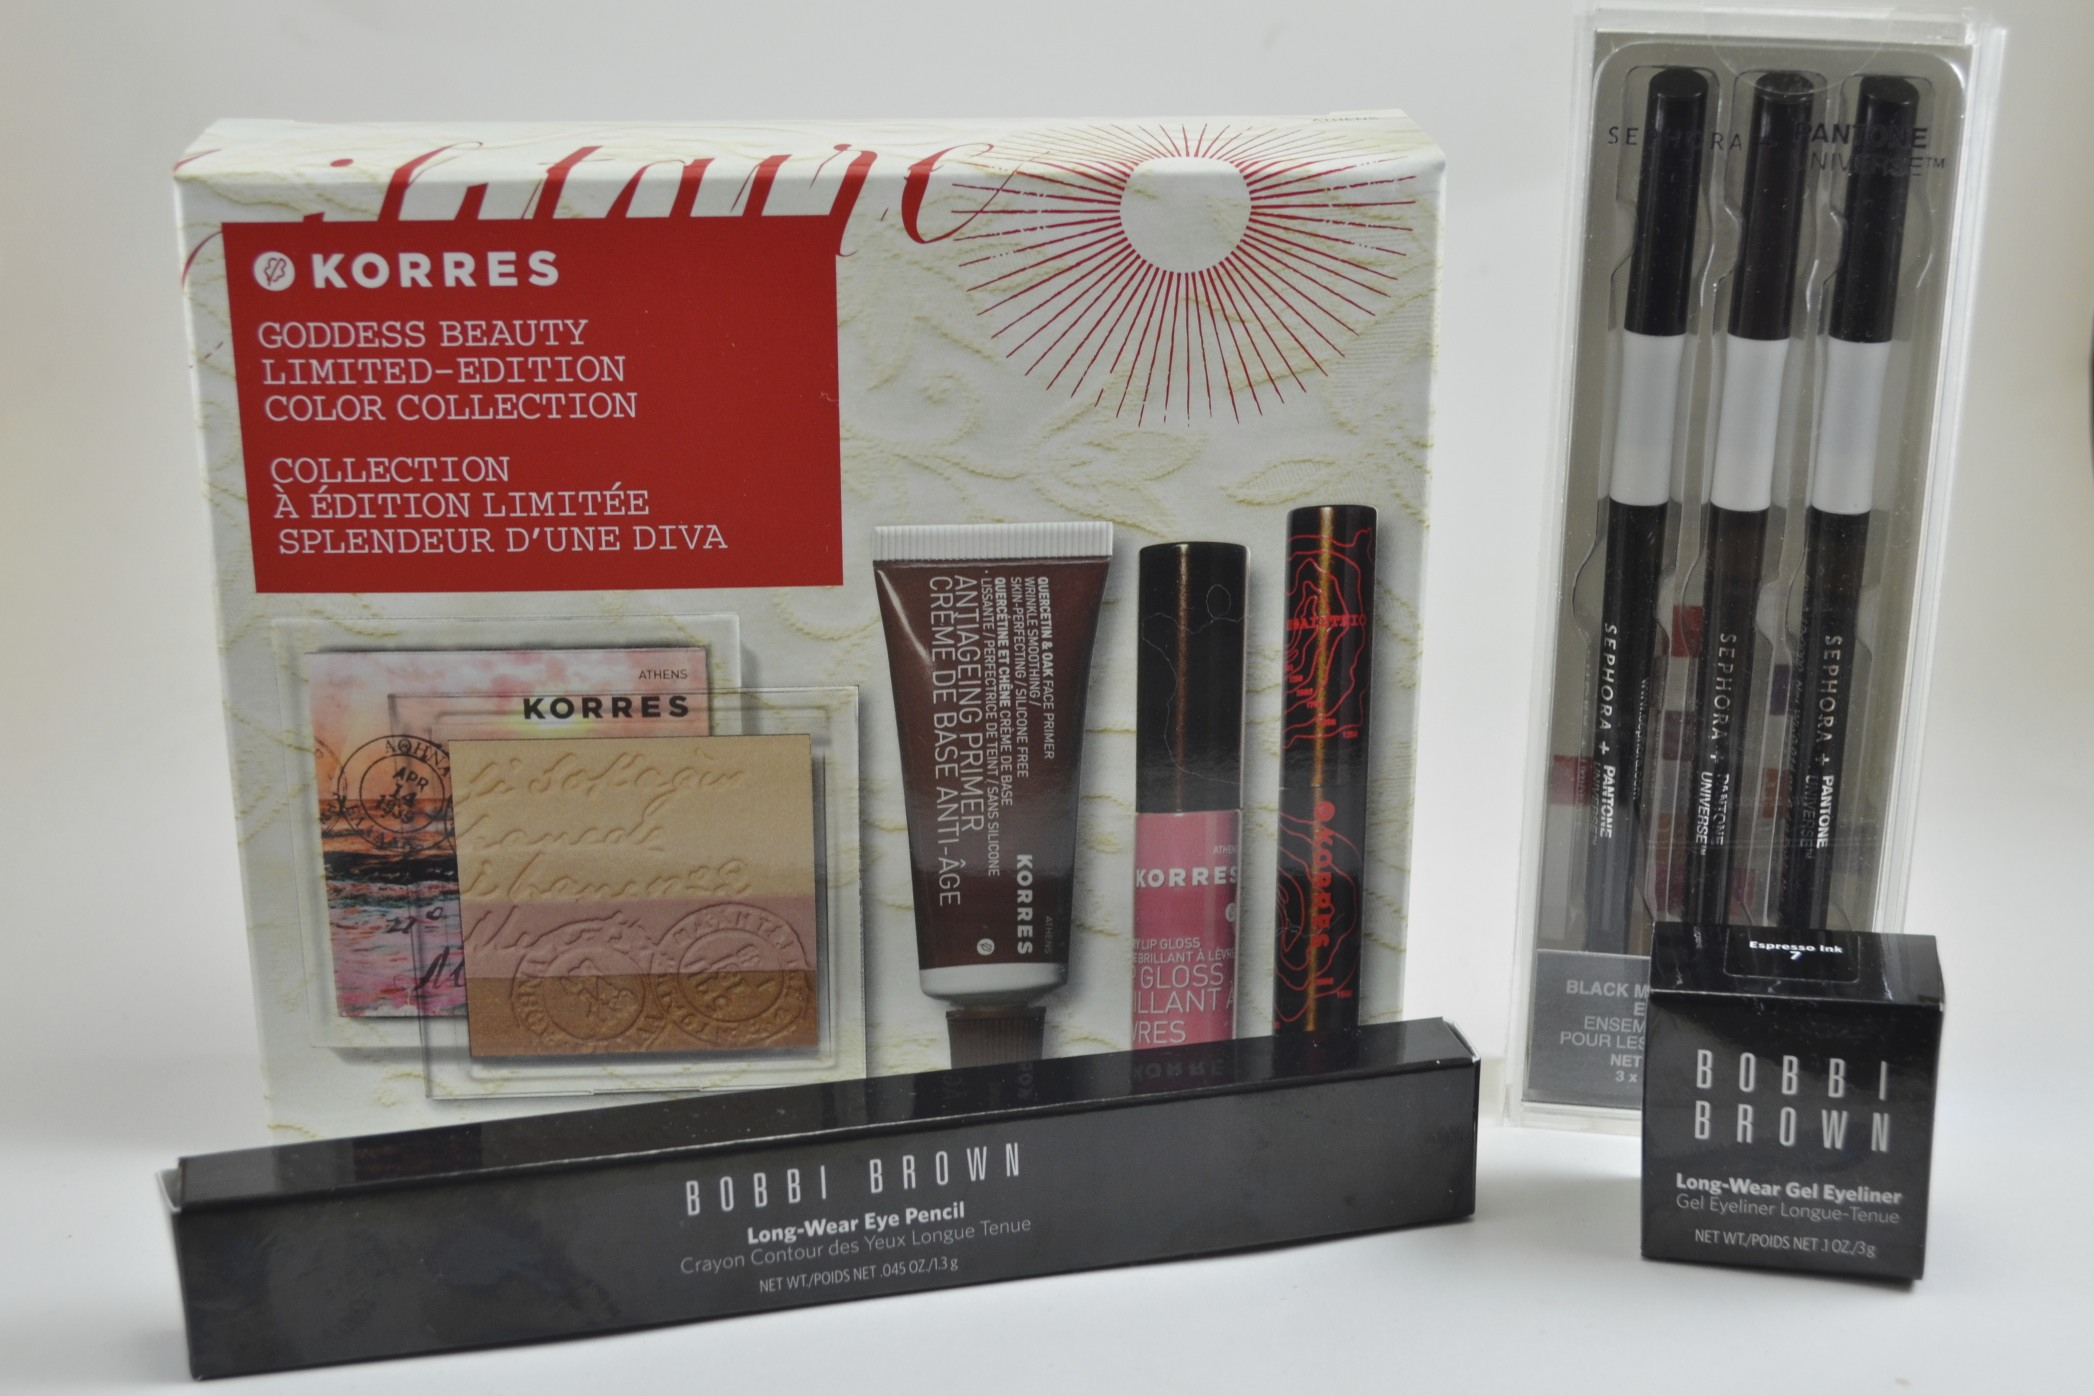 Korres goddess beauty color collection, sephora pantone black magic liner set, bobbi brown long wear eyeliner pencil black plum, bobbi brown long wear gel eyeliner espresso ink